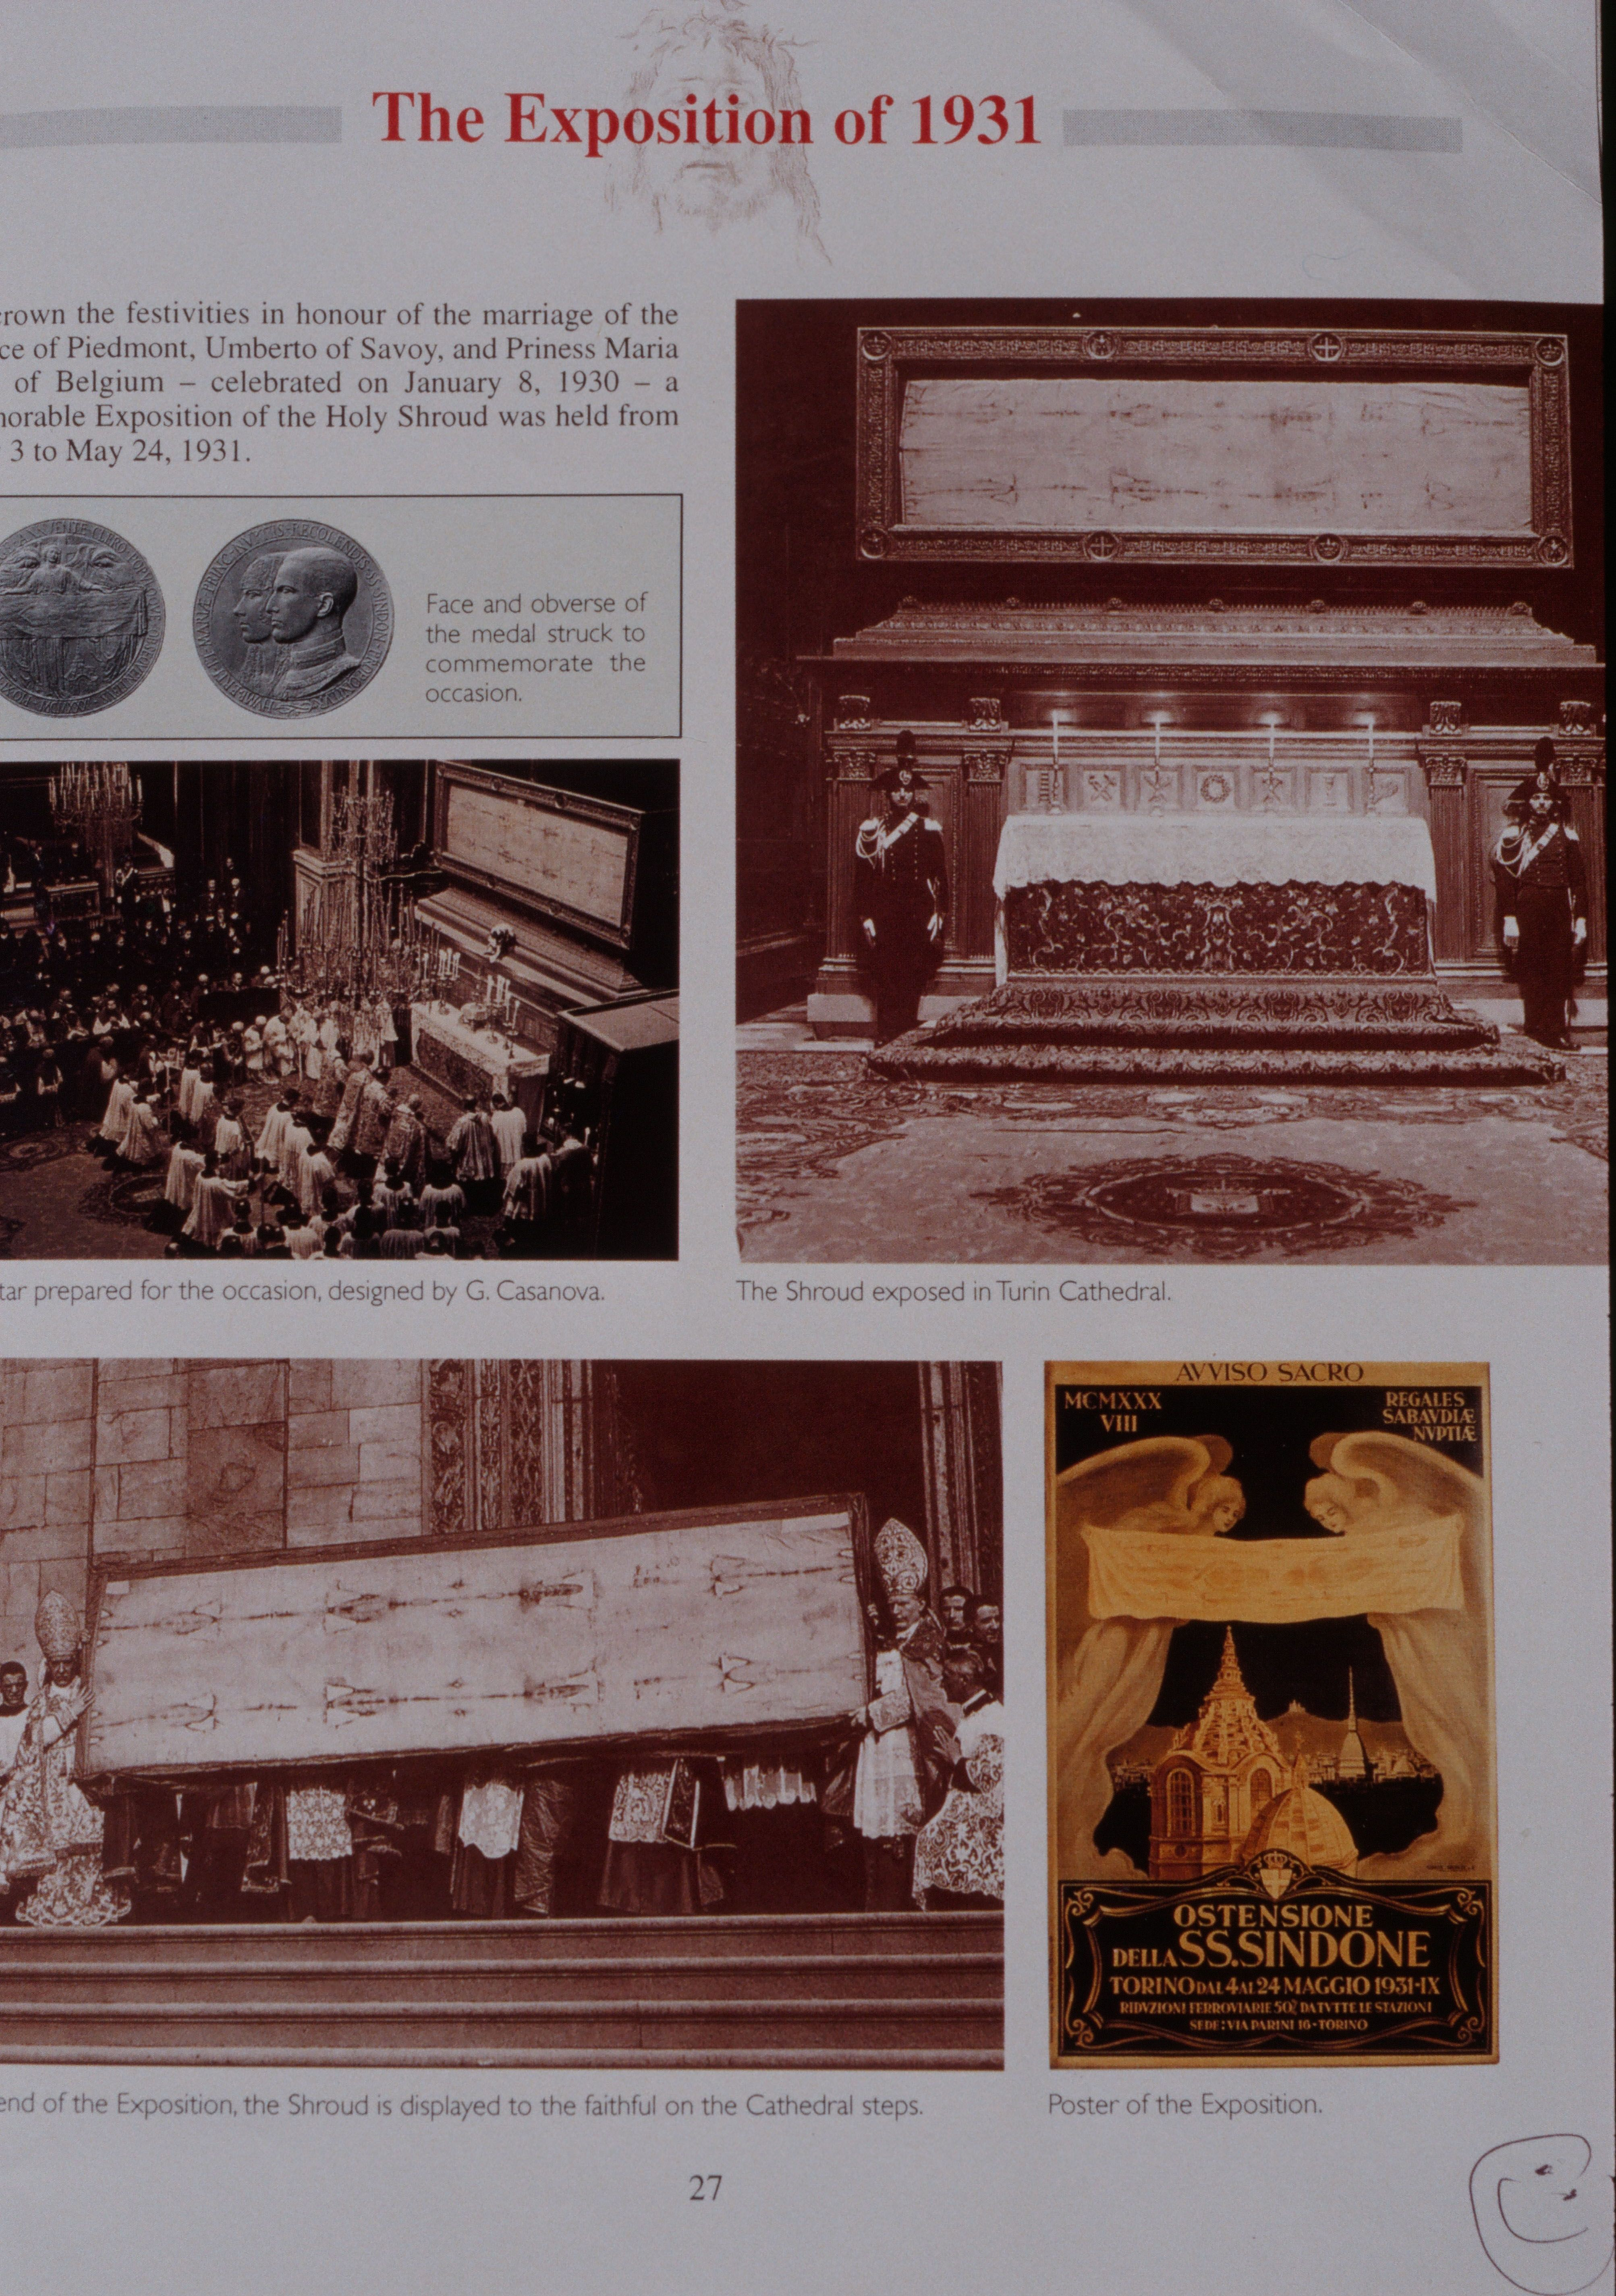 Information about the 1931 exhibition of the Holy Shroud